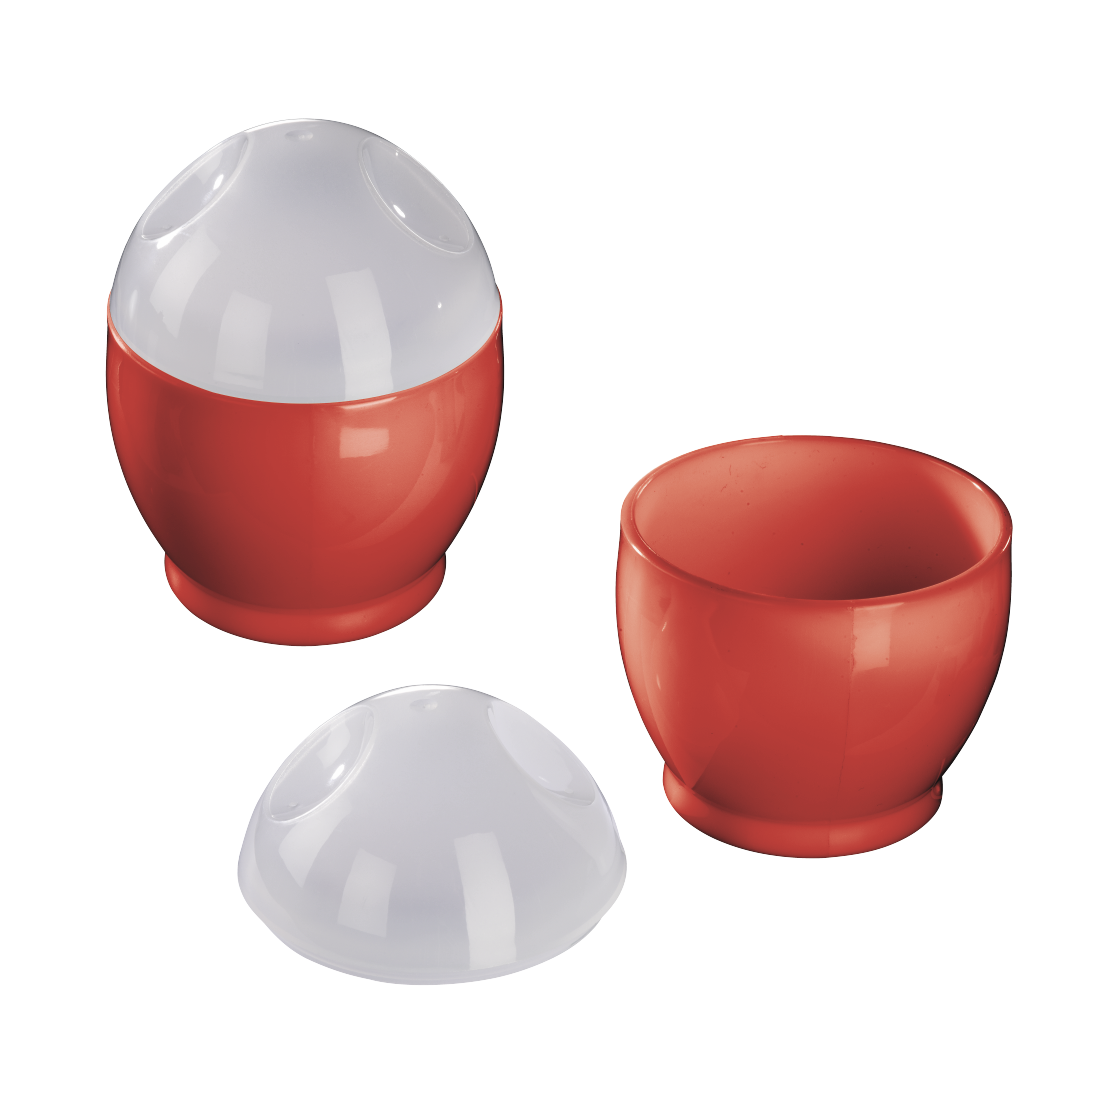 abx High-Res Image - Xavax, Set of 2 Microwave Egg Cookers, Polypropylene, 6 x 8 cm